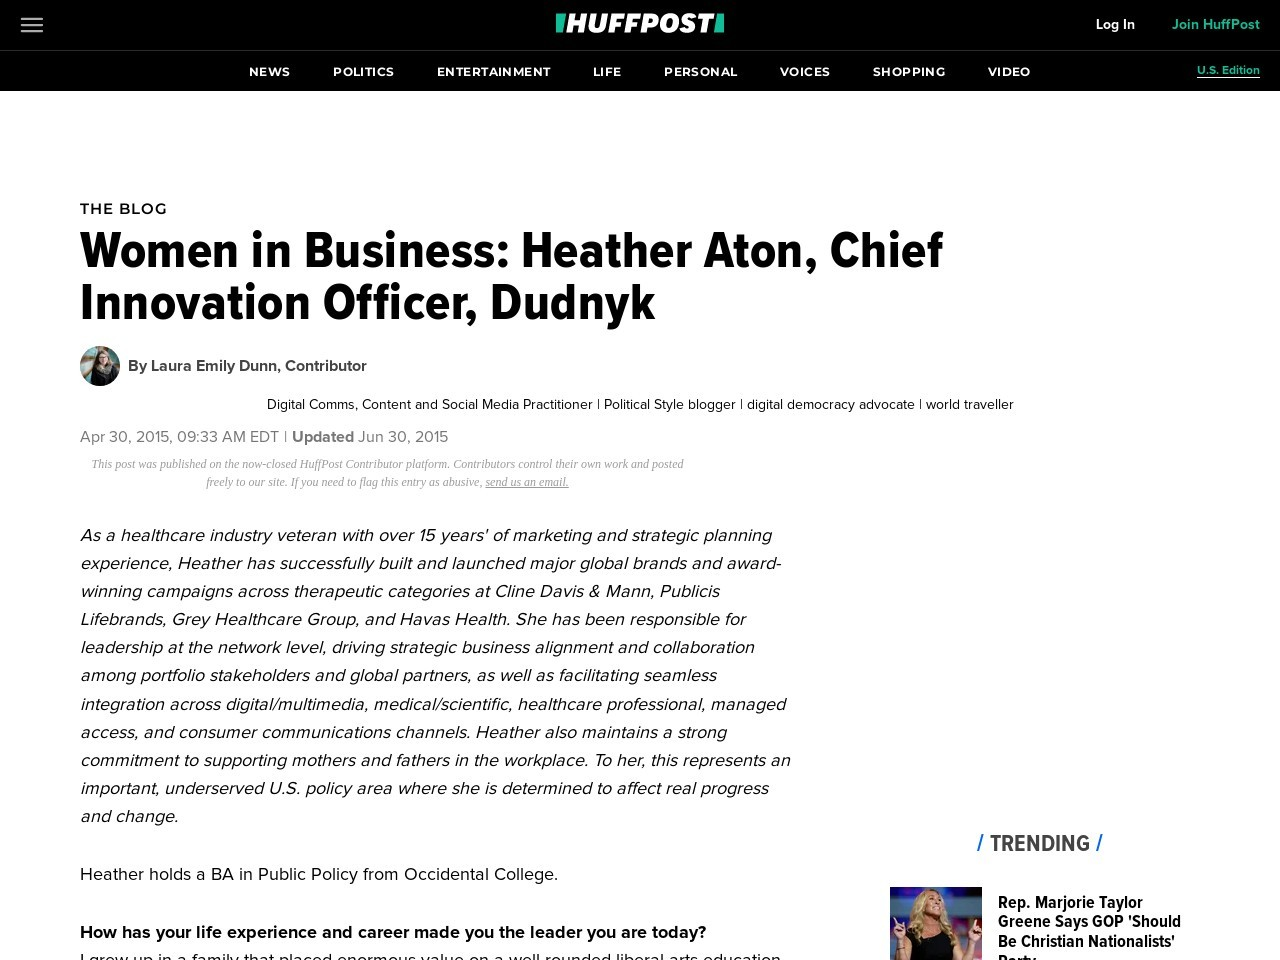 Women in Business: Heather Aton, Chief Innovation Officer, Dudnyk